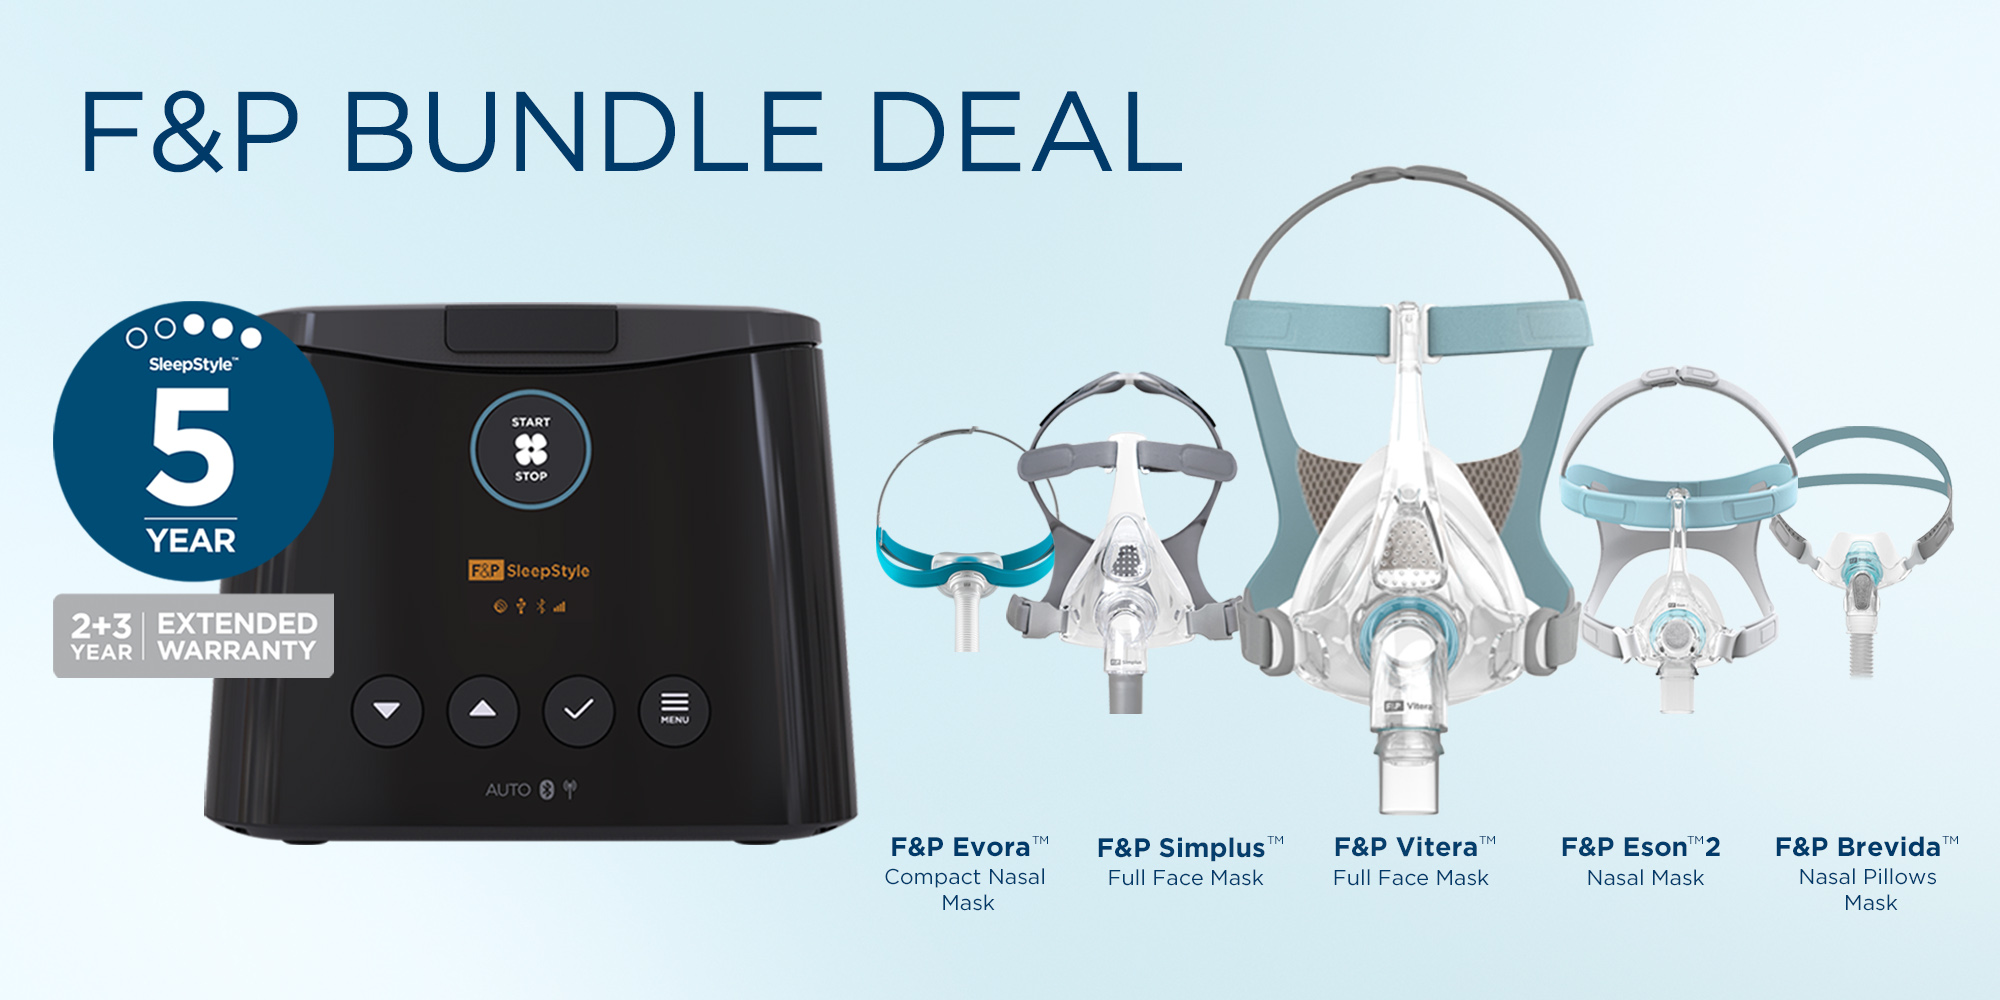 F&P CPAP Products for Sale in Australia